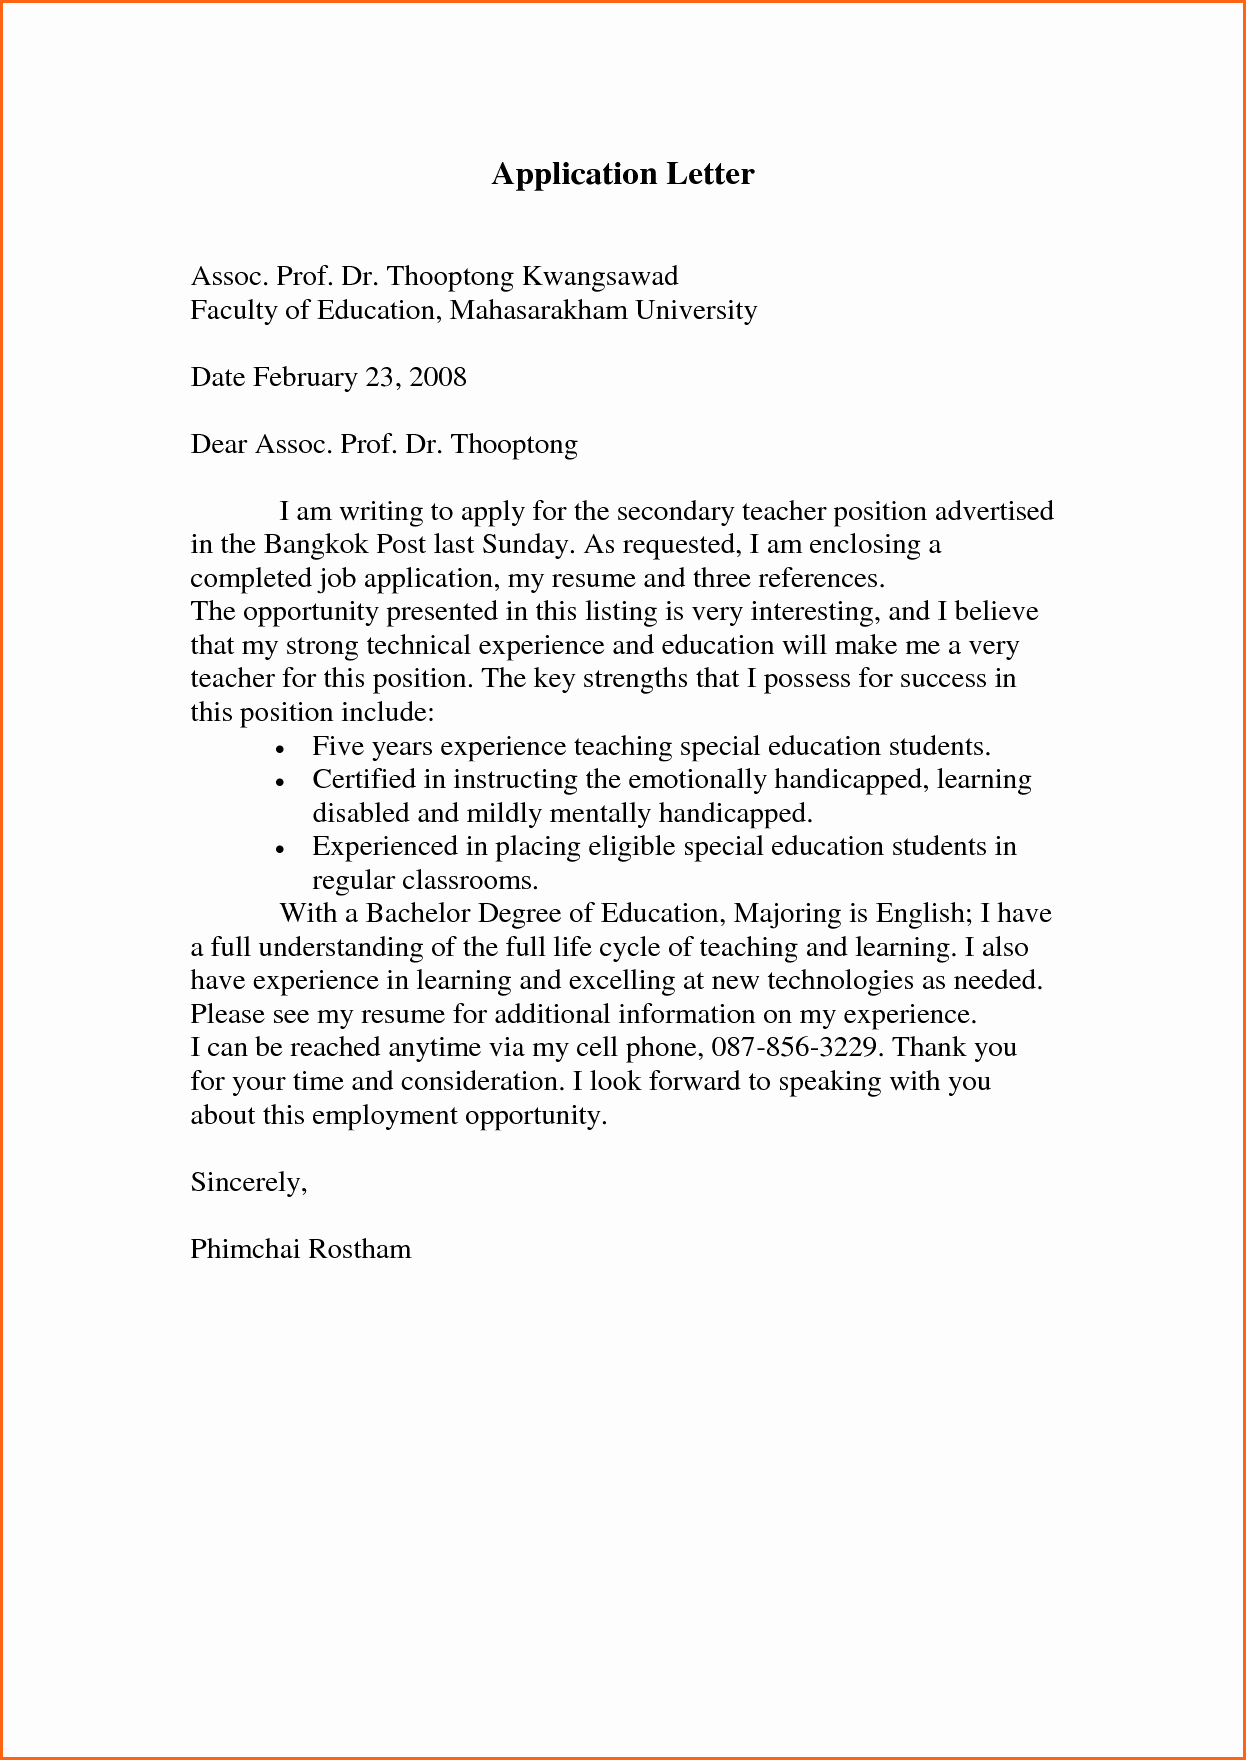 7 Sample Application Job Letter for A Teacher Bud